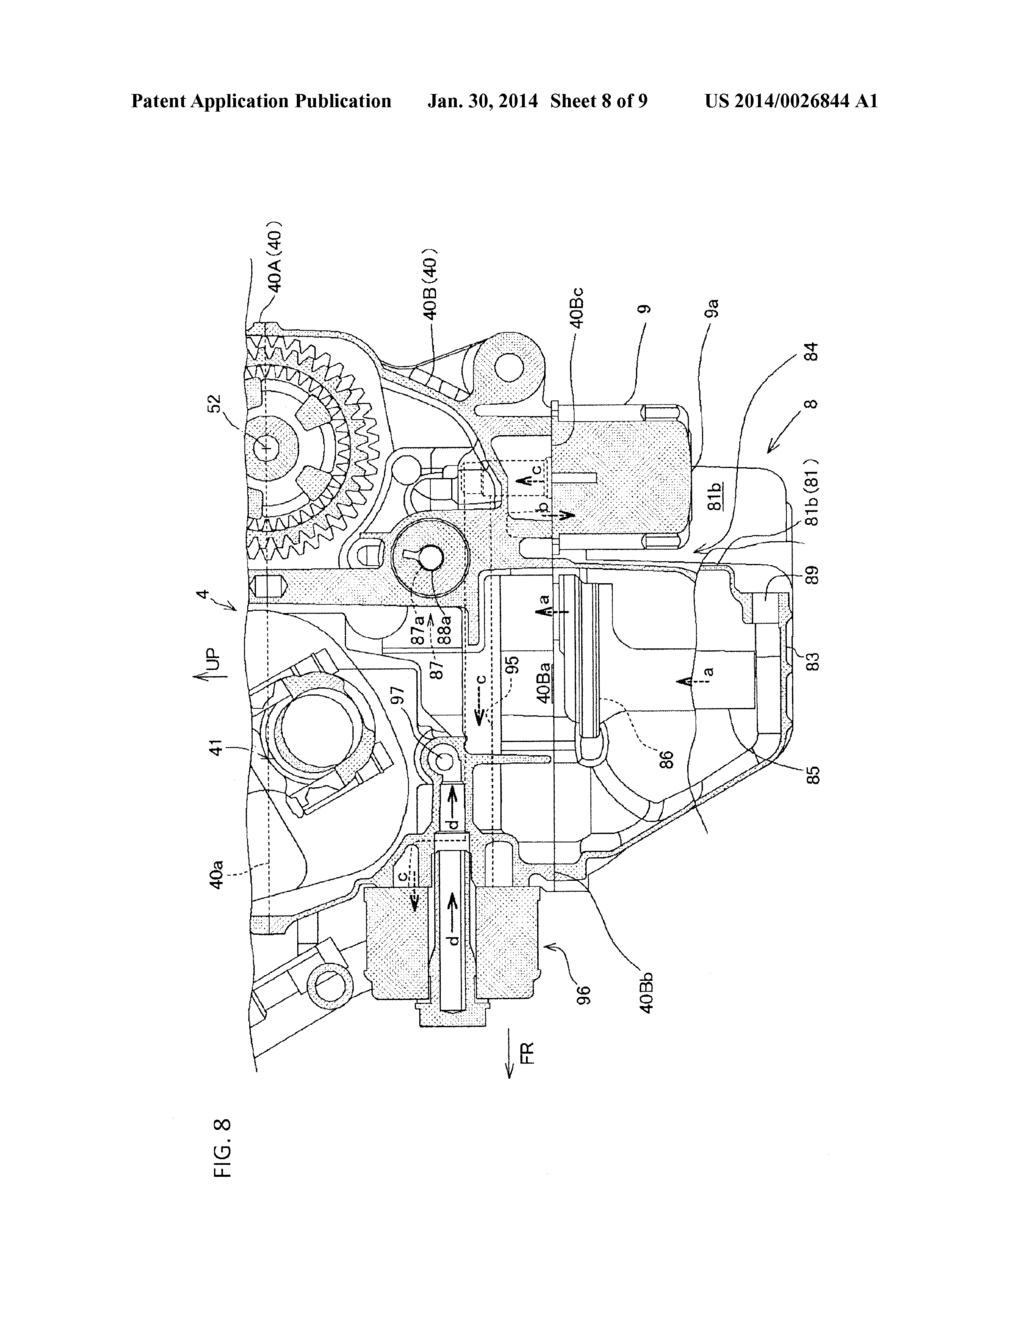 Layout Internal Combustion Diagram Engine Control Wiring System Oil Filter Structure For Rh Patentsencyclopedia Com Stirling